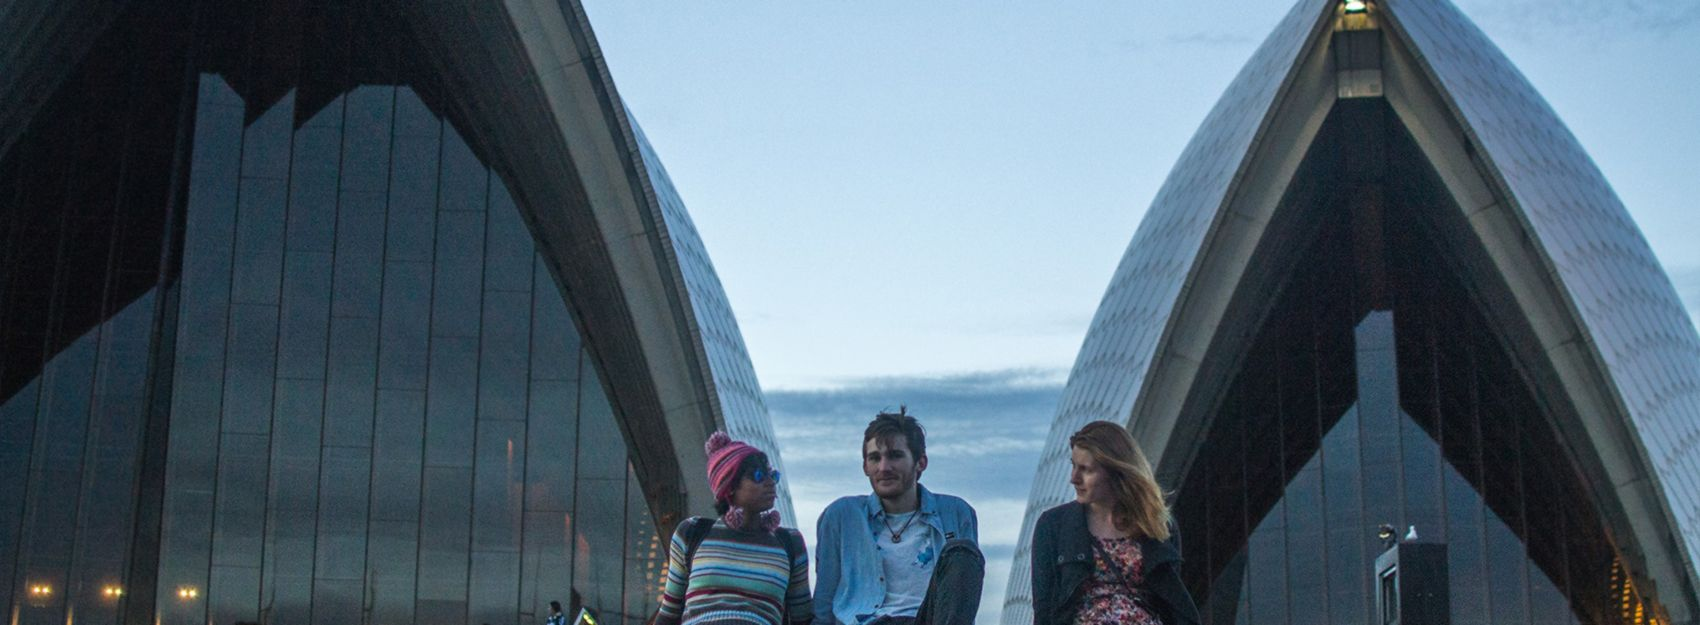 Students in front of the Sydney Opera House